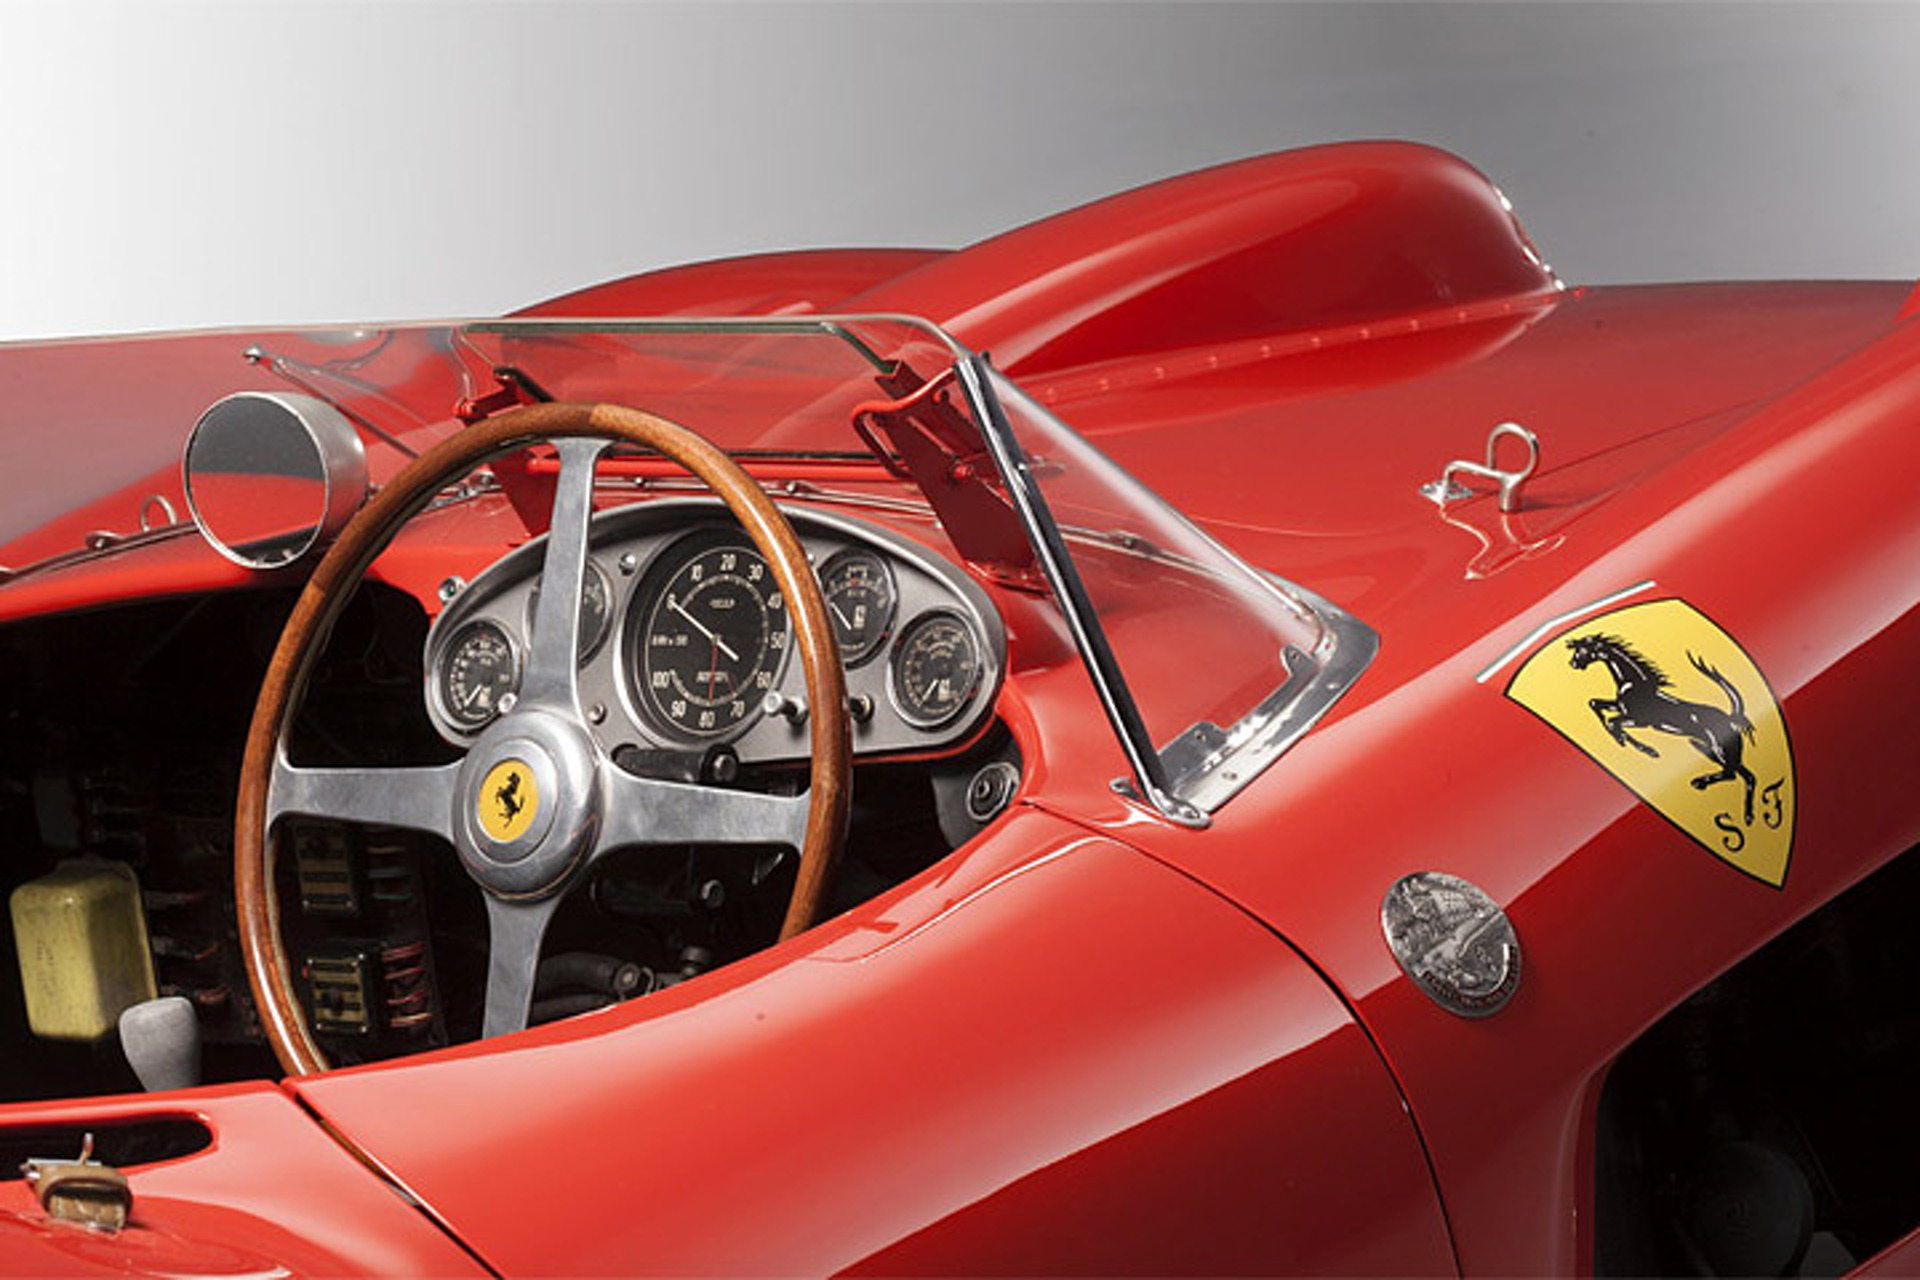 This 1957 Ferrari is Expected to Sell for Over $31 Million